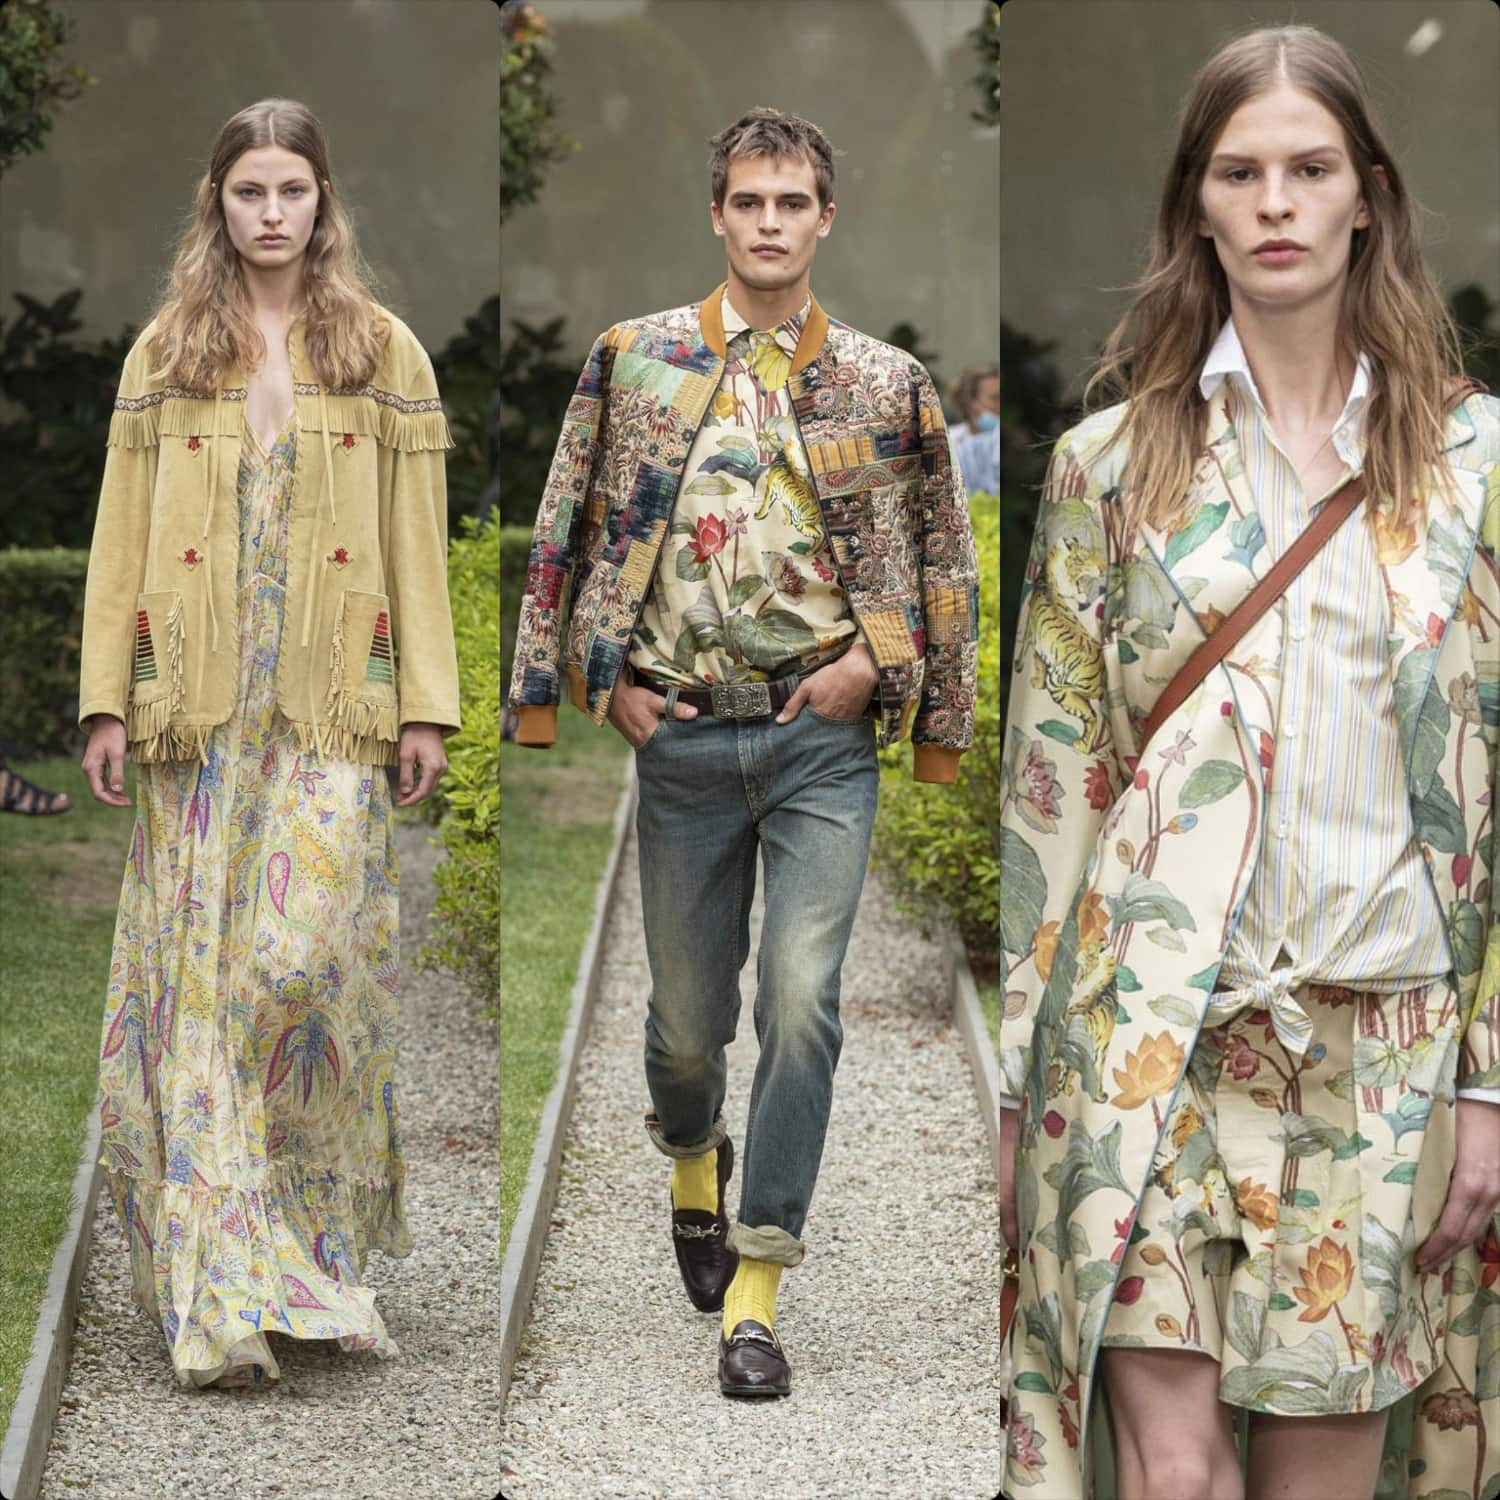 Etro Spring Summer 2021 Men and Resort 2021. RUNWAY MAGAZINE ® Collections. RUNWAY NOW / RUNWAY NEW